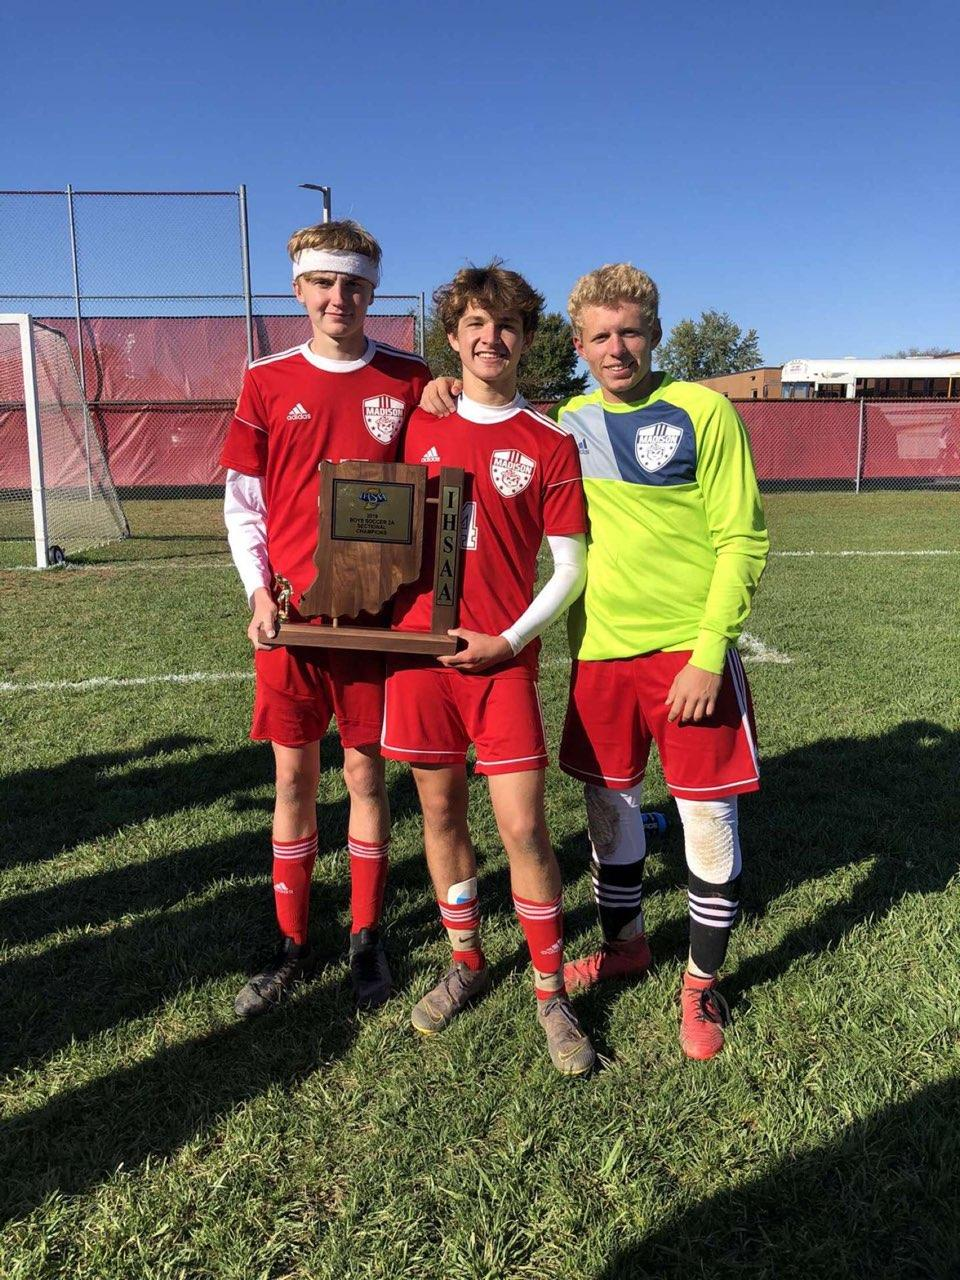 Juniors Smith, Zach Forner, and Will Heitz pose with the sectional championship trophy,